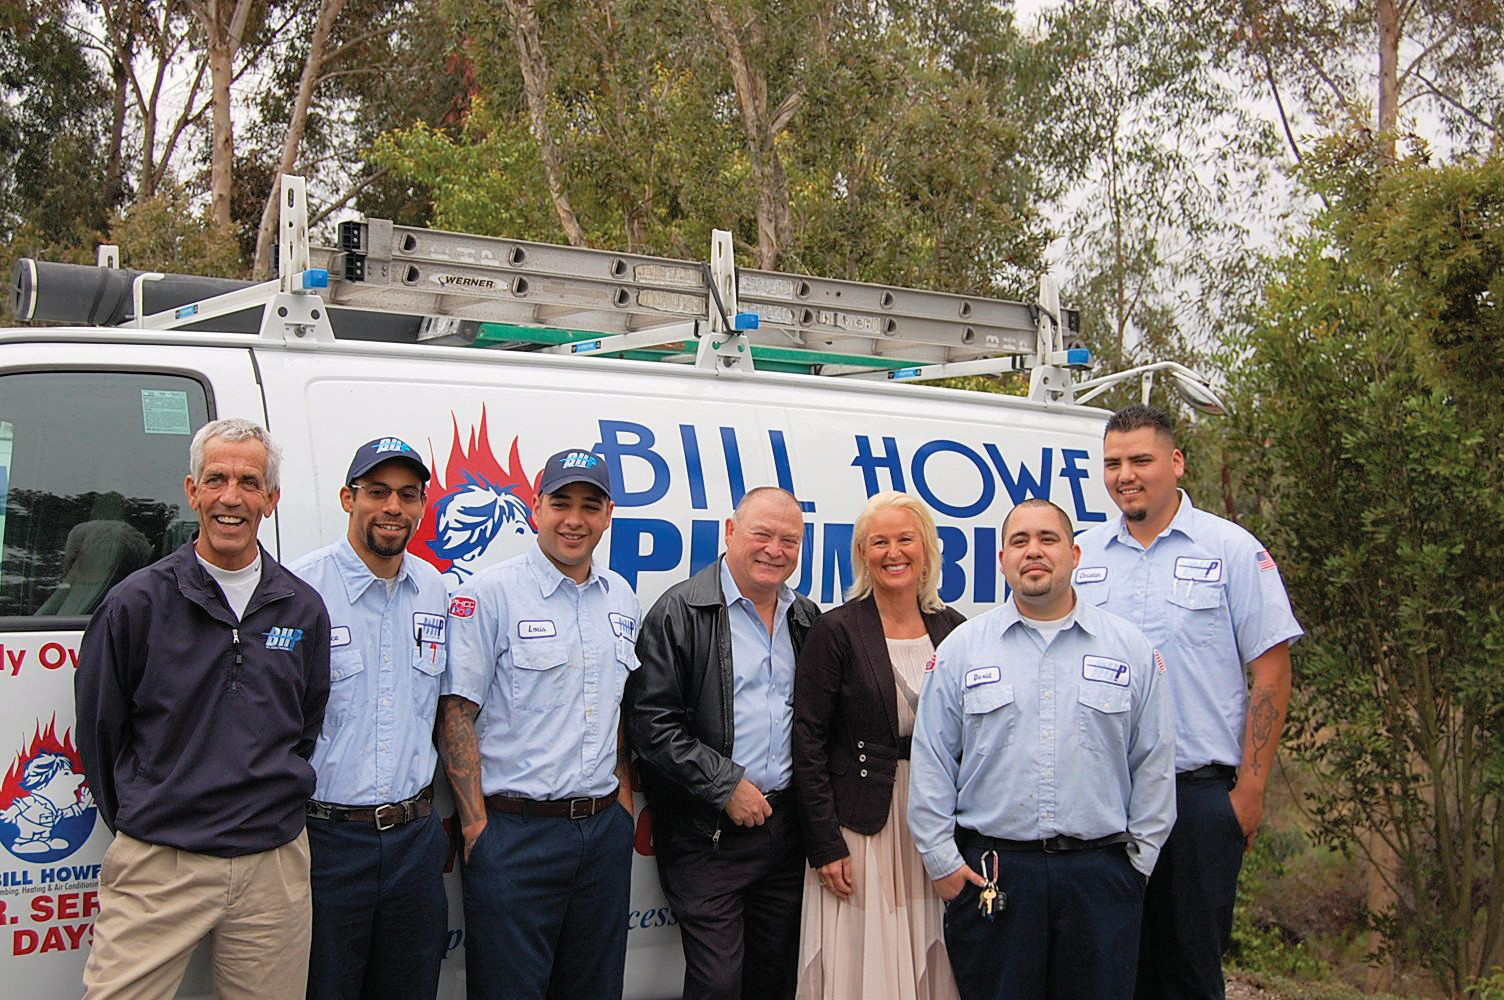 bill moments national tech hvac plumbing howe uwaatqht day i